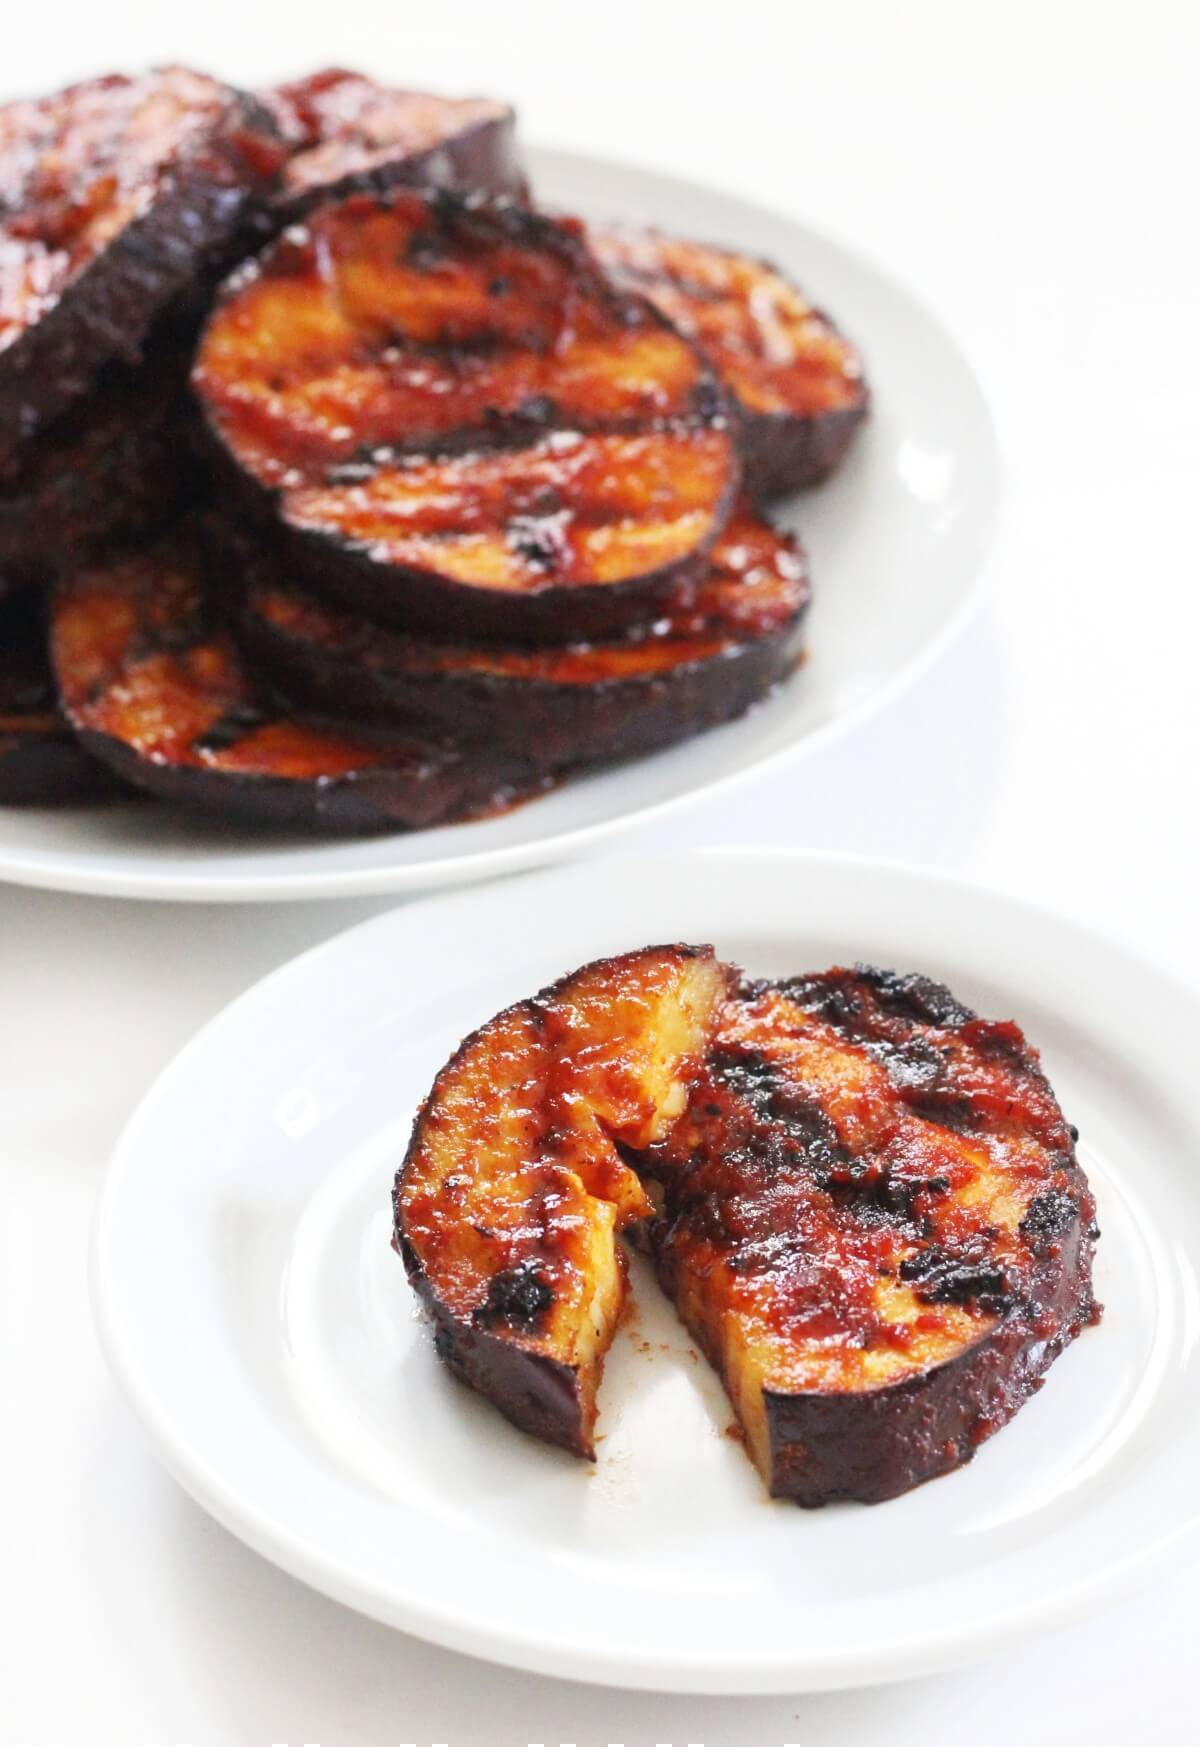 sliced grilled eggplant steak with bbq sauce on plate